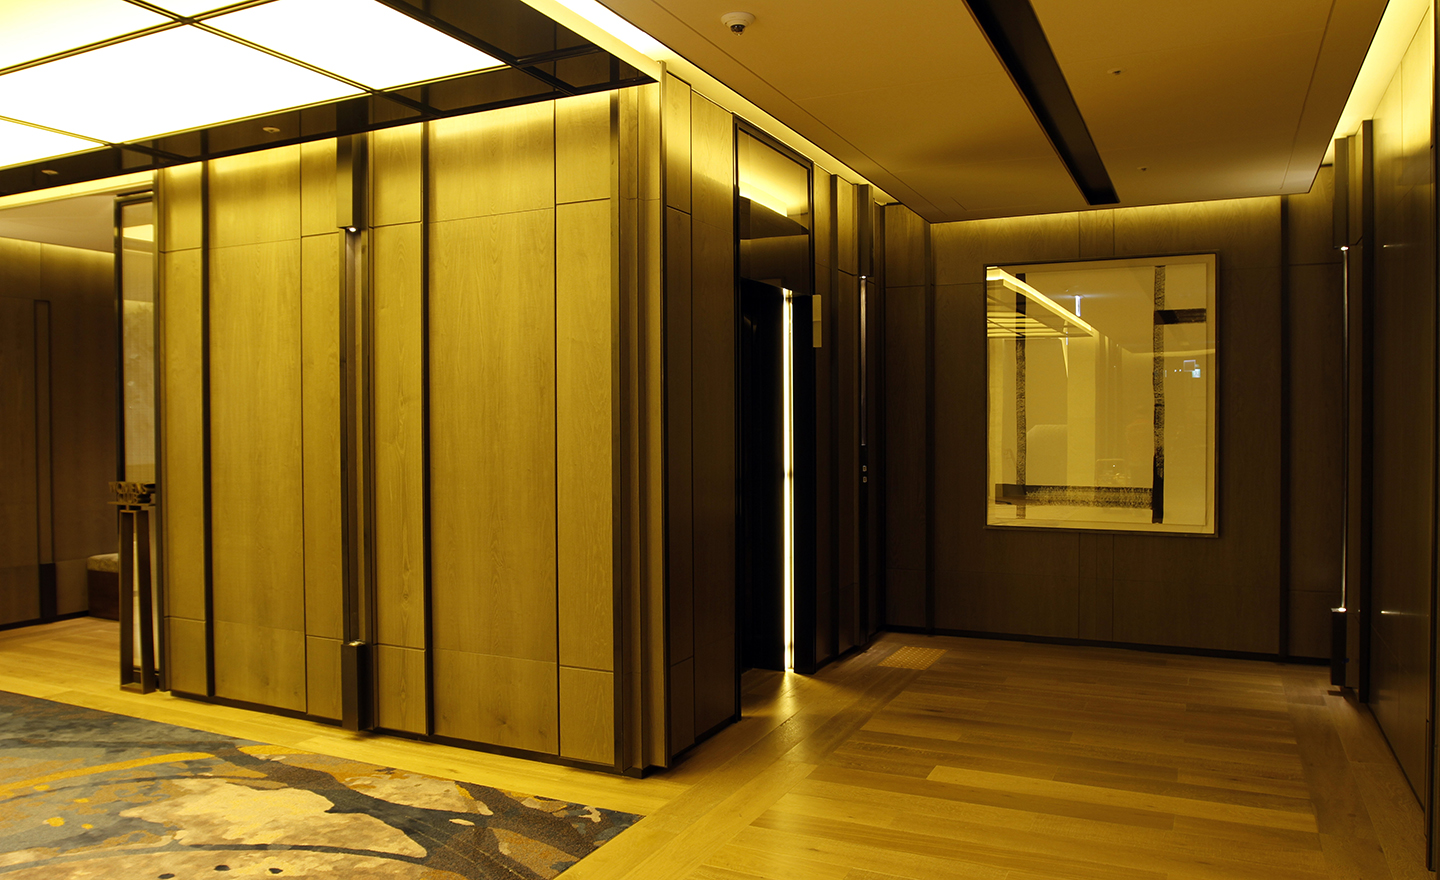 Installation view at Four Seasons Hotel Seoul